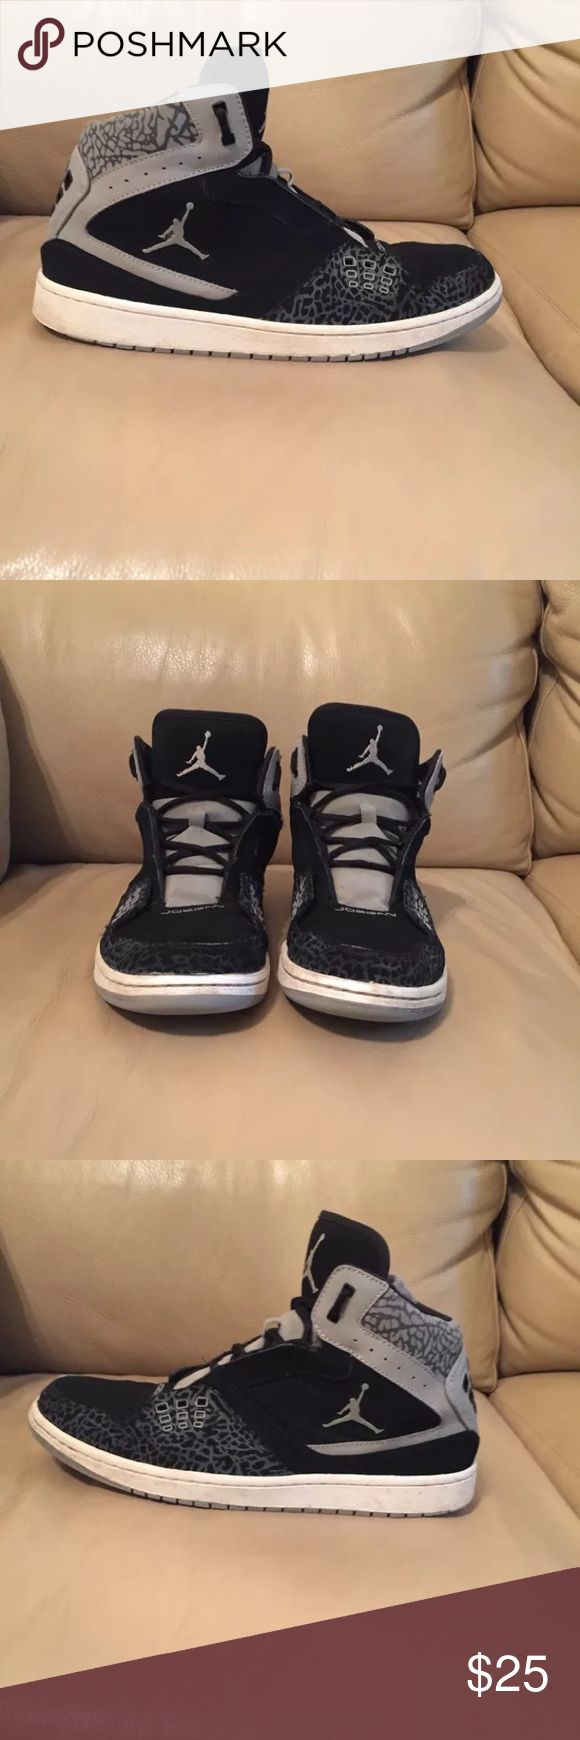 Jordan High Top Basketball Shoes 372704-055 Nike  Jordan 23  Size 12 2013 #372704-055  Black and gray  Clean inside and out  Some scuffing and dirt marks on white rubber and on soles  Minor wear to soles at heels Preowned Air Jordan Shoes Sneakers